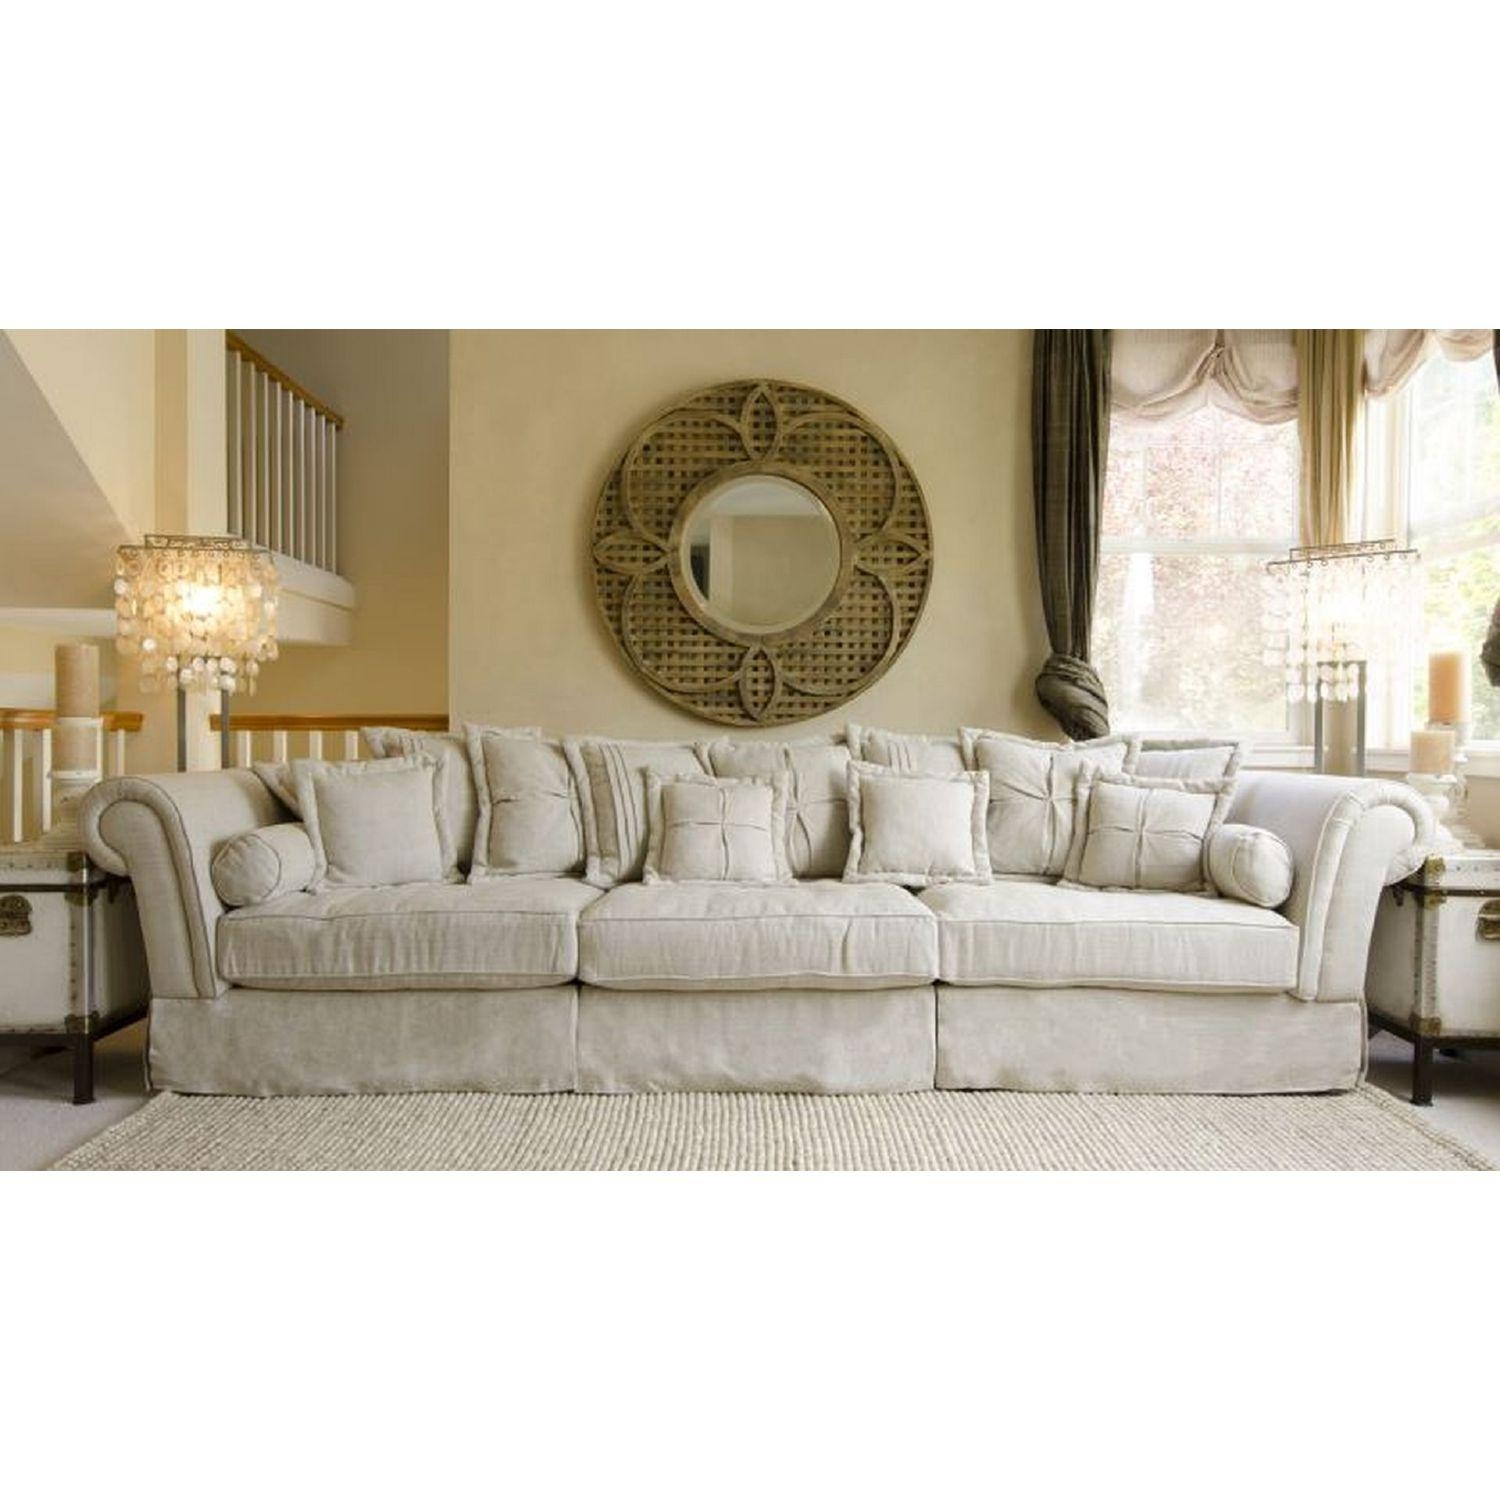 Furniture Home : Amusing Shabby Chic Sectional Sofa 16 For Your With Regard To Shabby Chic Sectional Sofas (View 6 of 20)